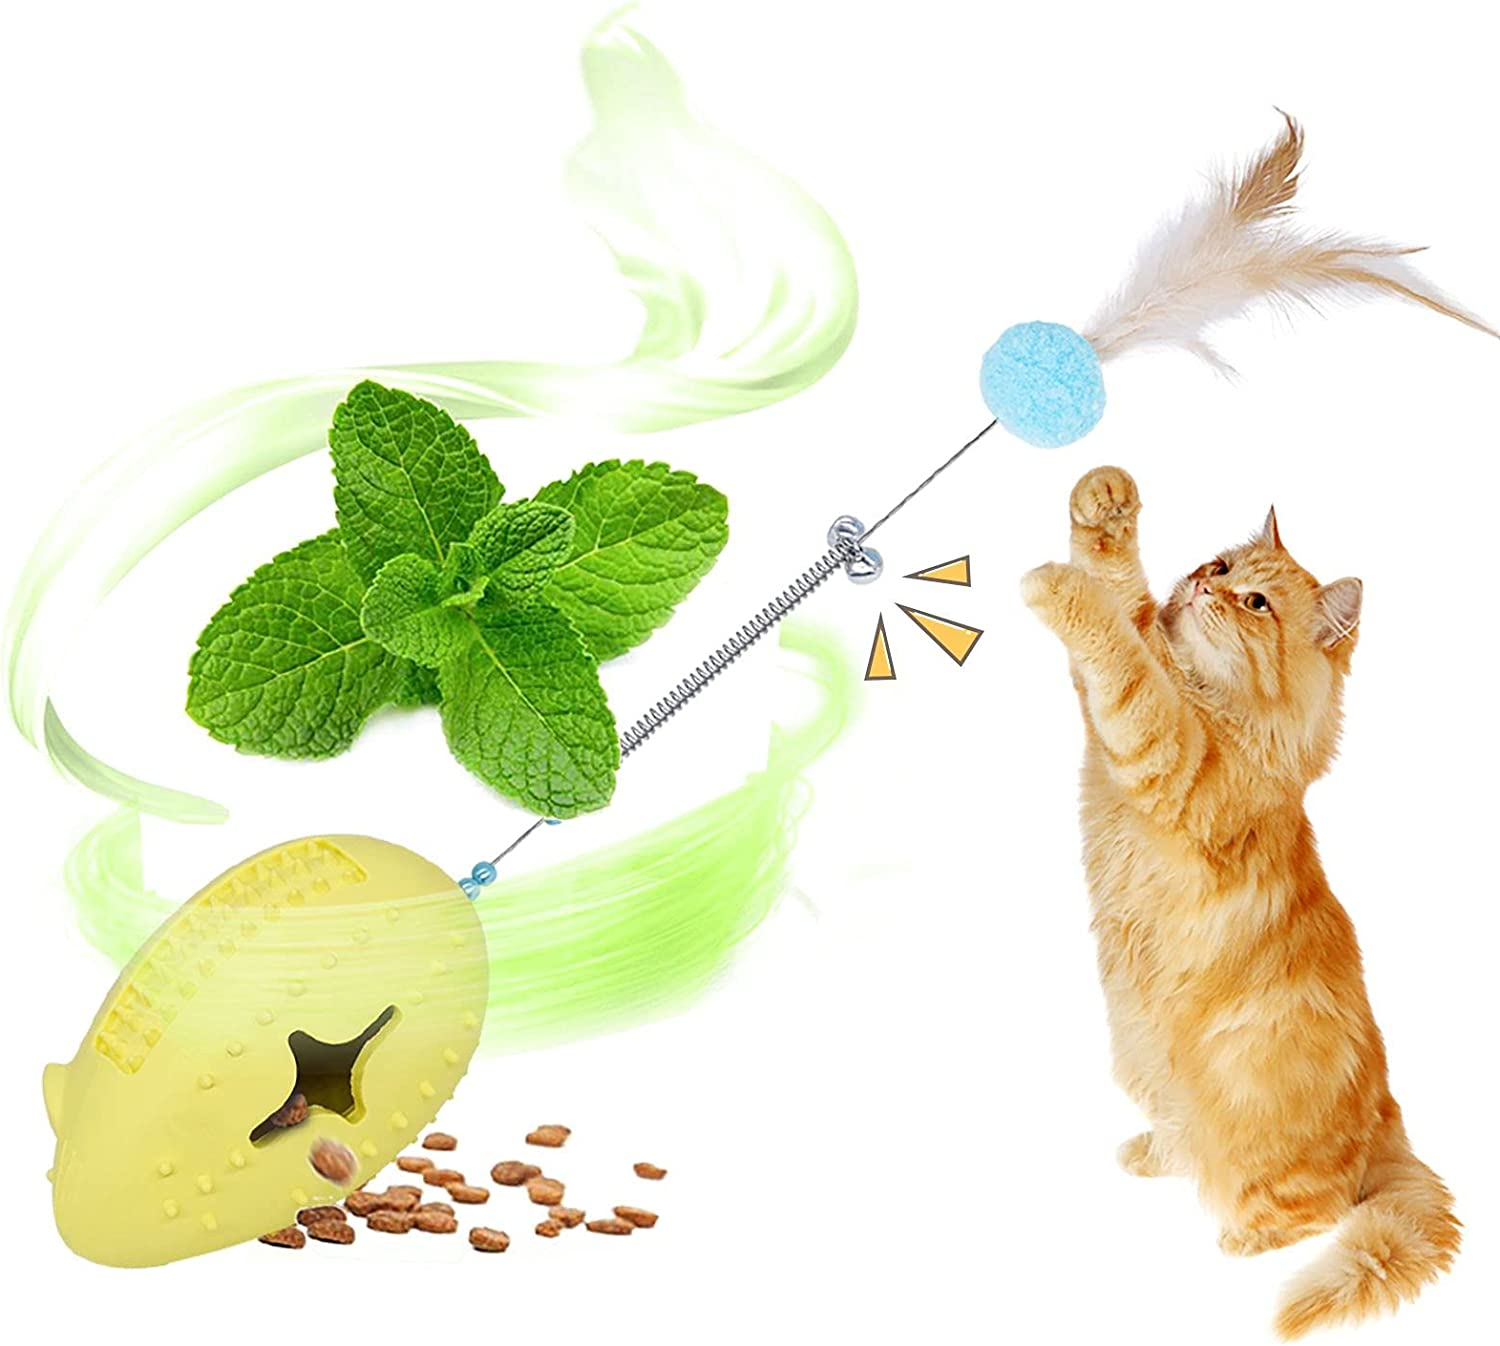 Petdexon Catnip Toys for Indoor Cats,5 in 1 Interactive Puzzle Mouse Cat Chew Toys, Cat Feather Teaser Toy with Spring Bell,Rubber Food Dispenser Toy, Kitten Toys for Massage Scratching,Yellow